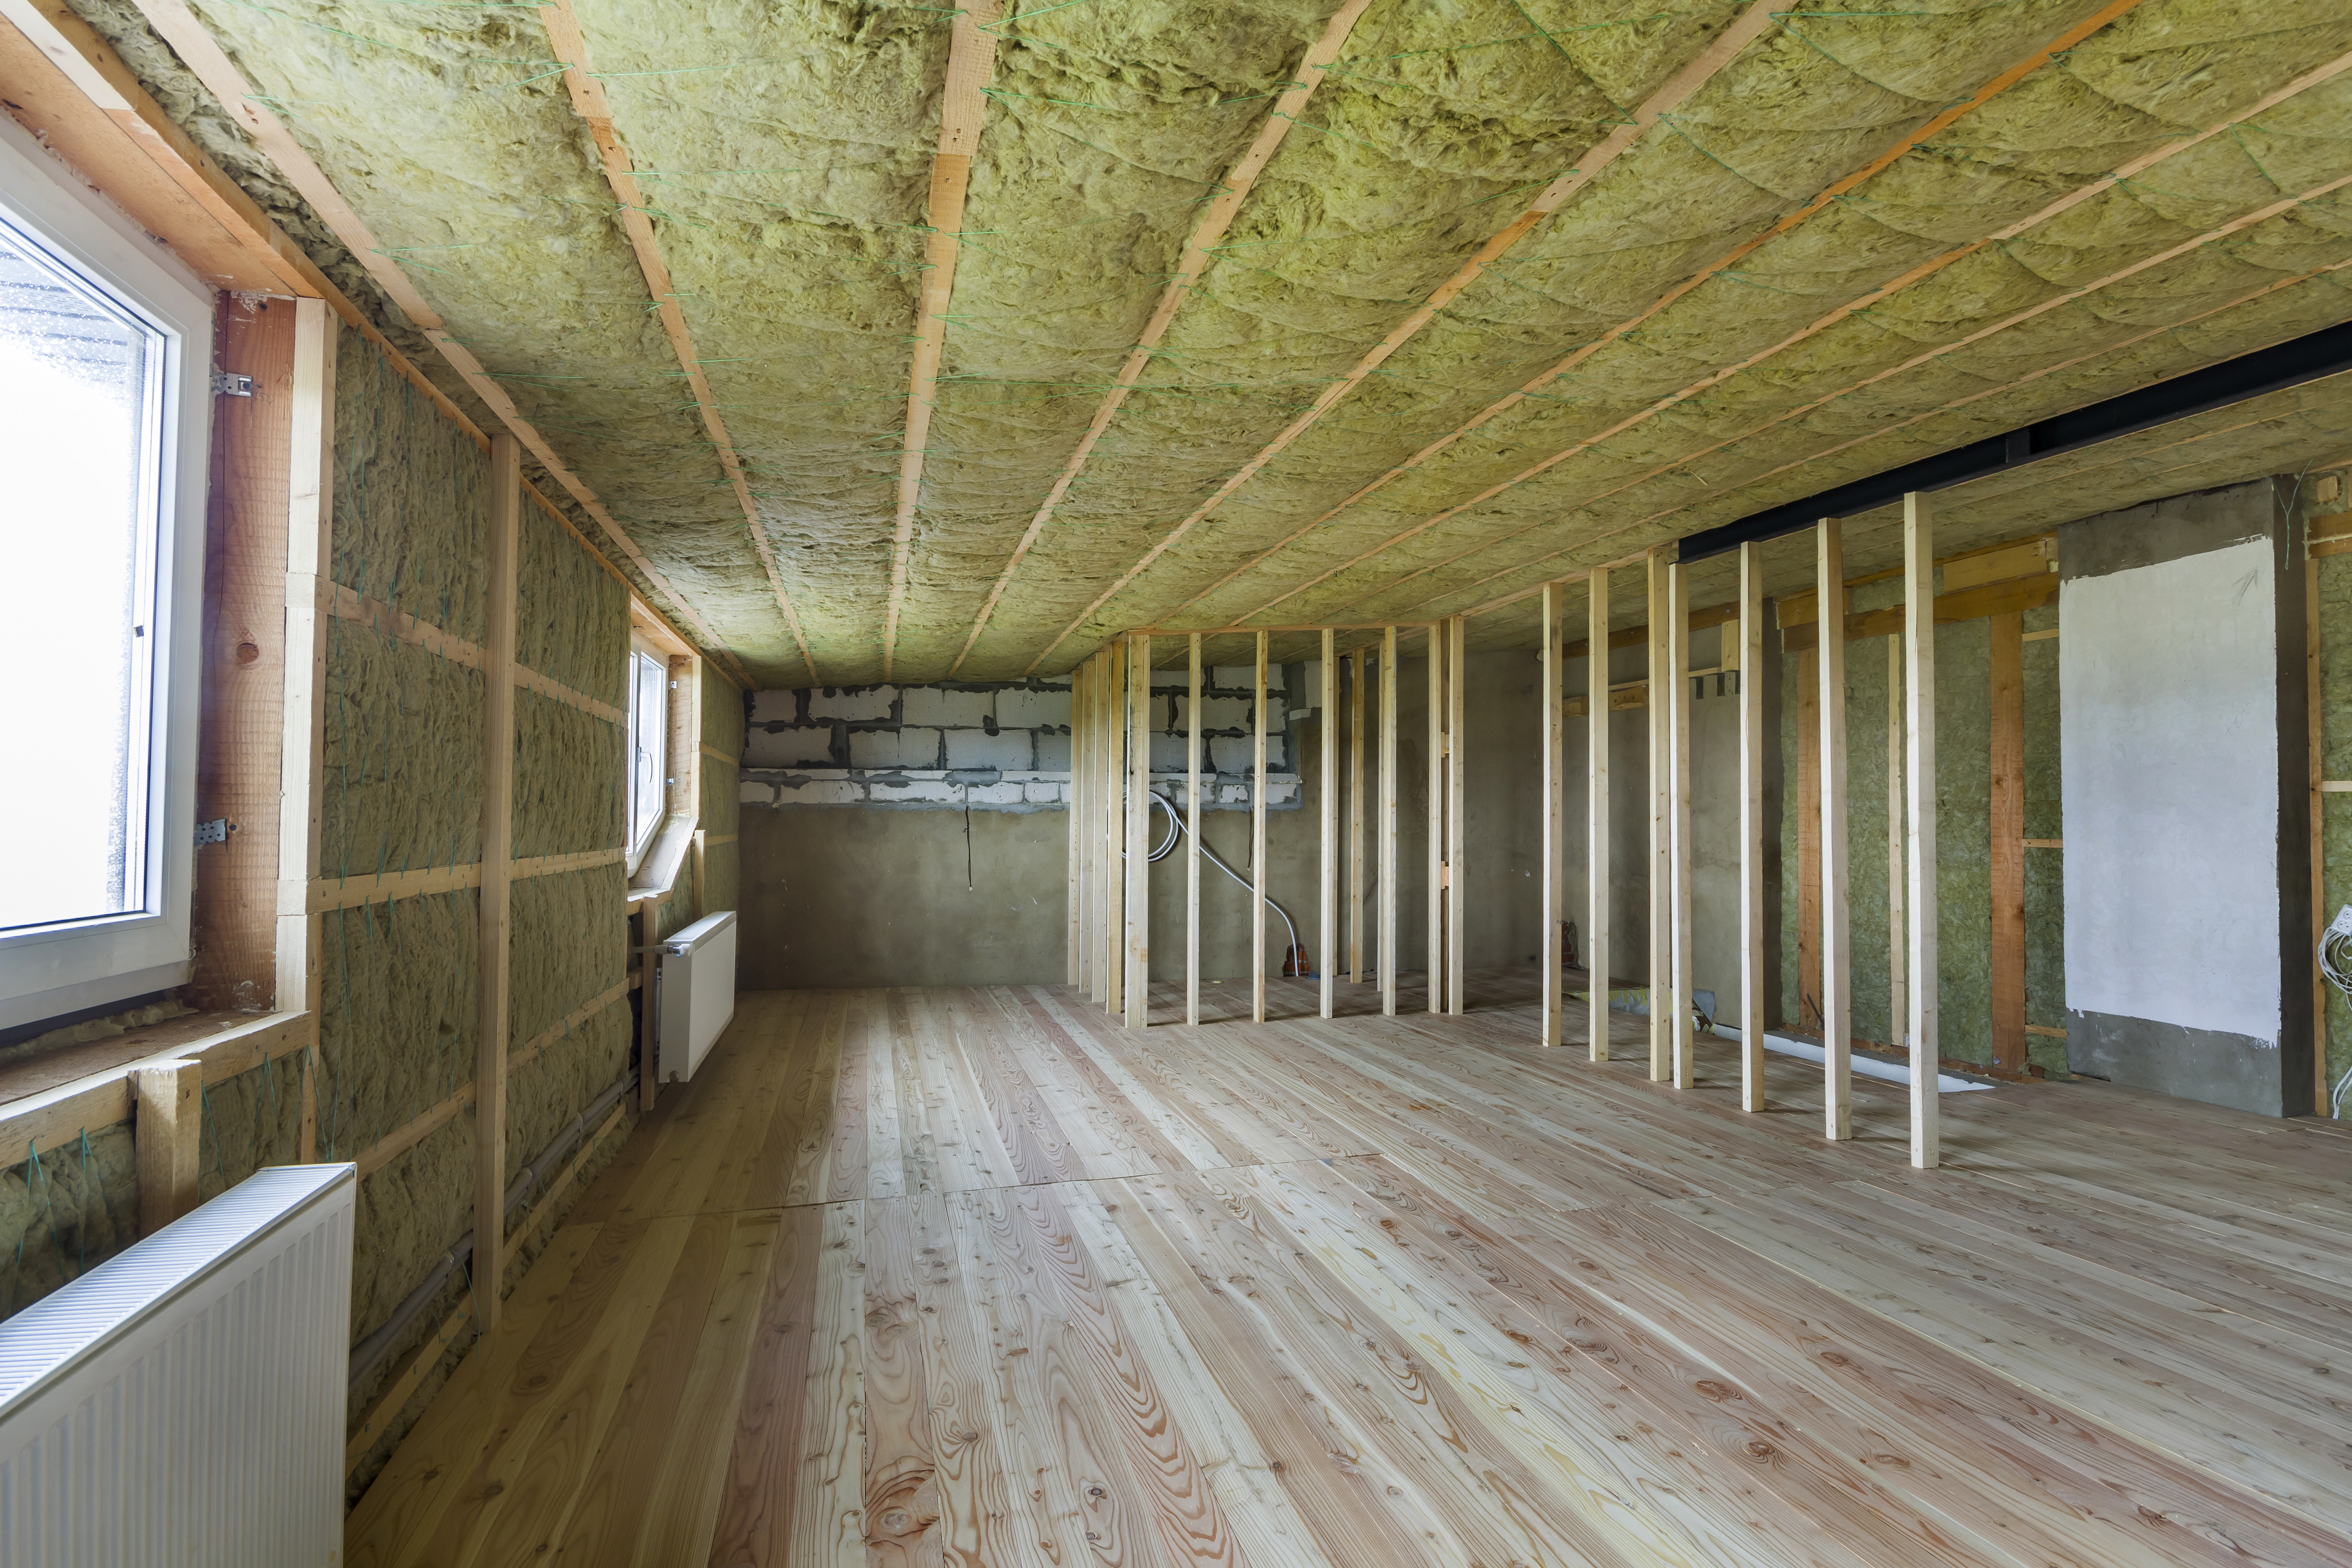 How To Put Insulation In A Ceiling Before Drywall Home